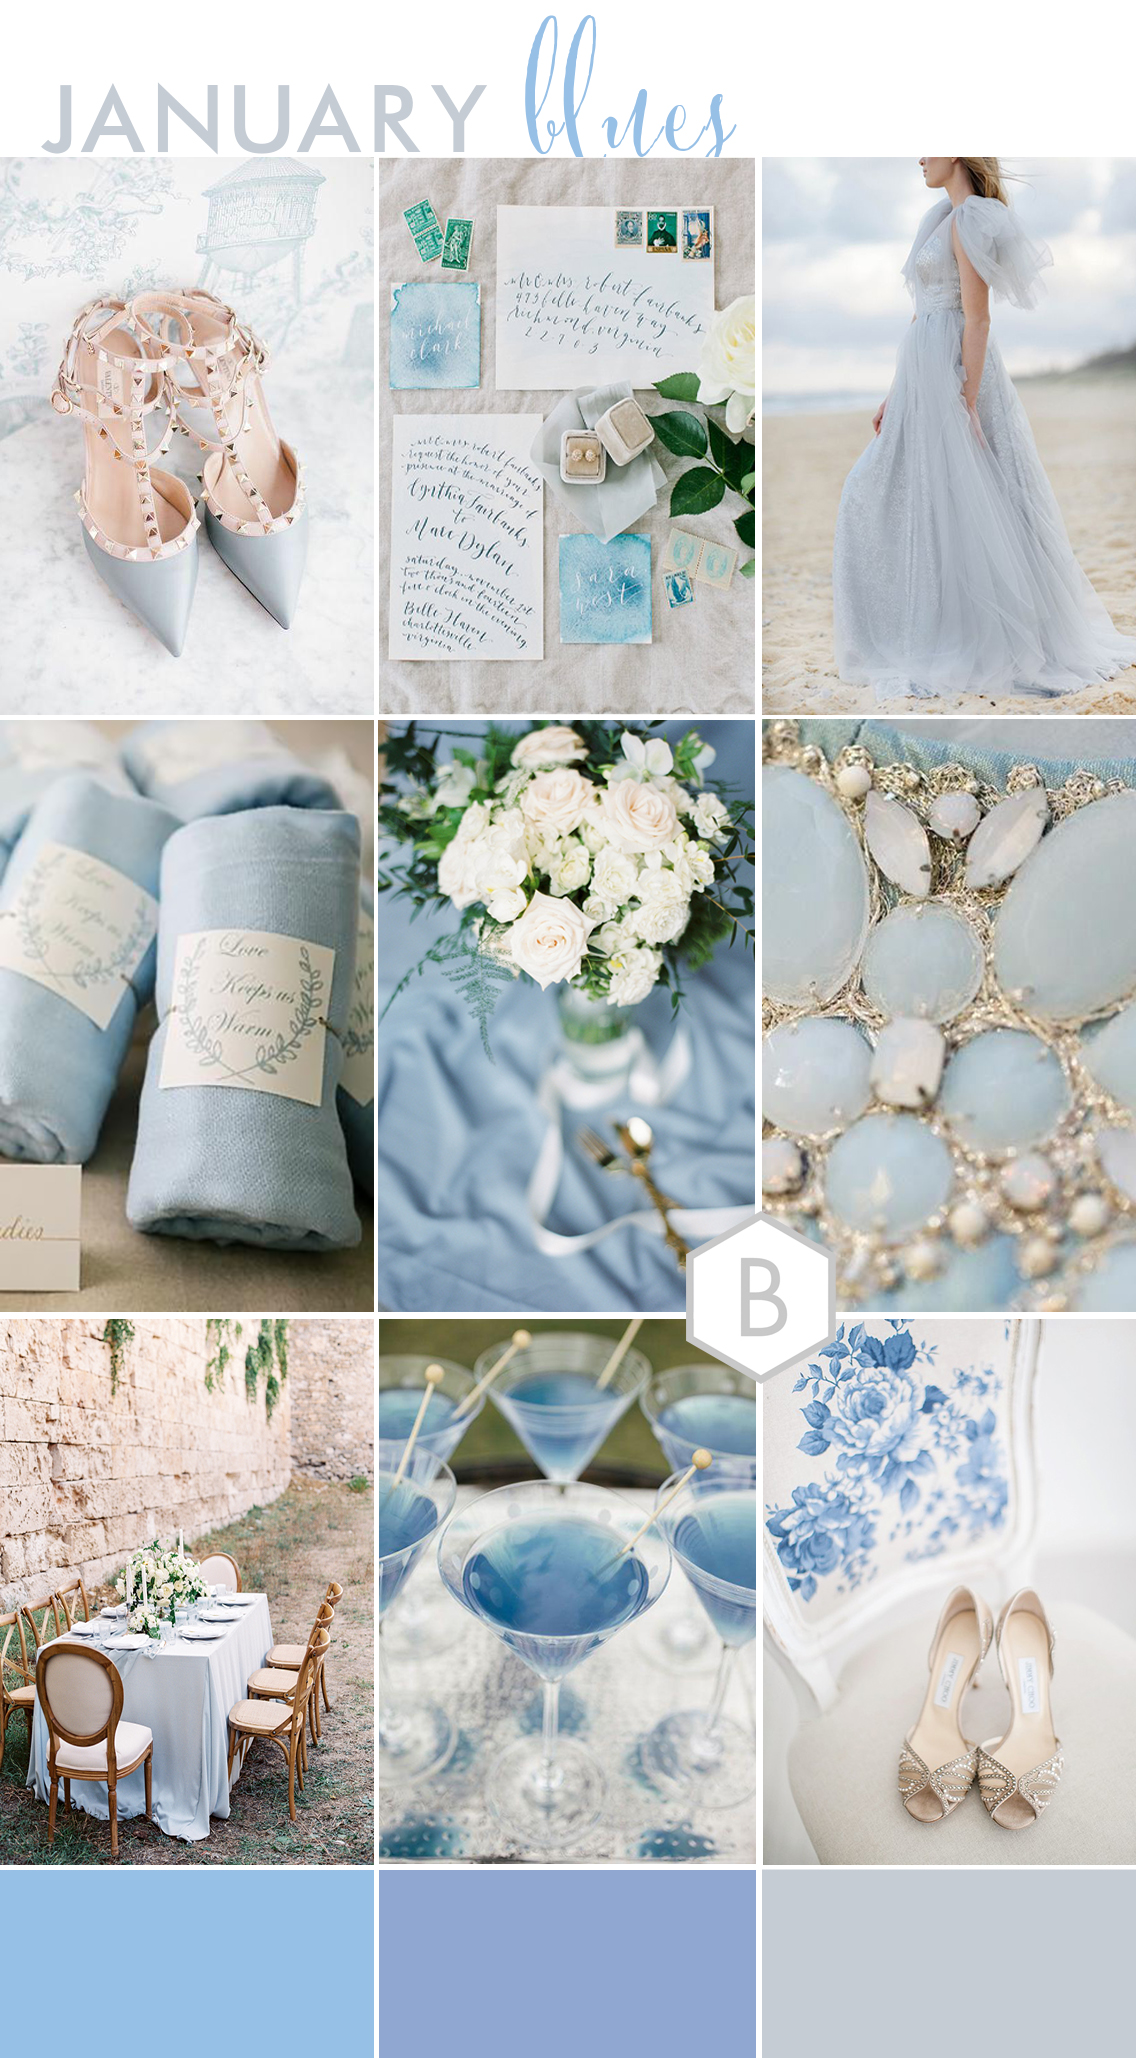 BLOVED Wedding Blog Blue Wedding Inspiration Winter Wedding